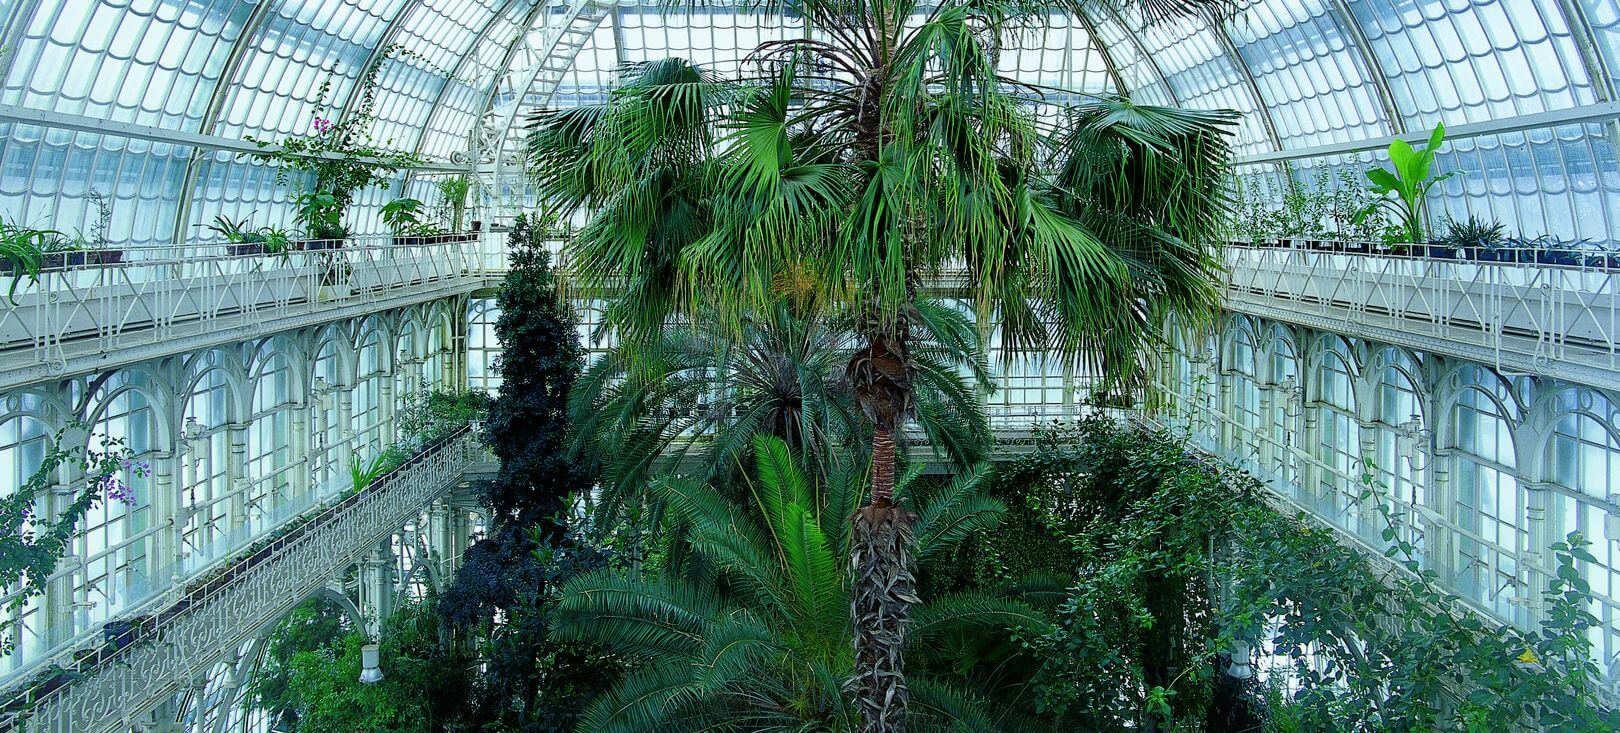 interior of the Palm House (photo credit: schoenbrunn.at)